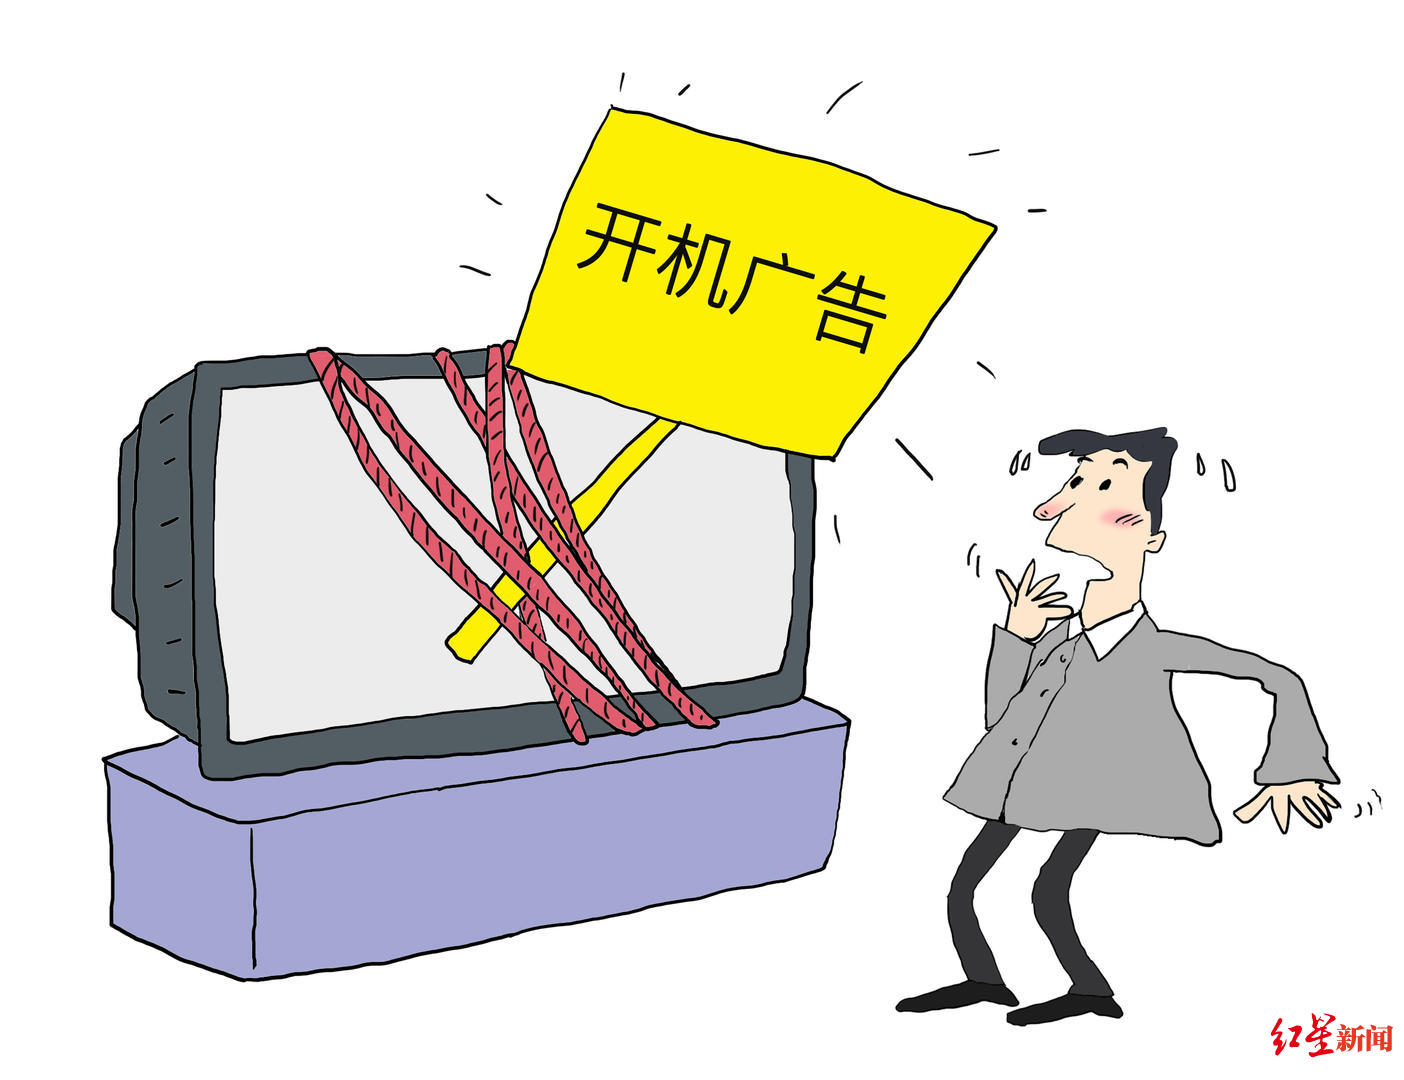 http://www.kzmahc.tw/shumaguangdian/484730.html